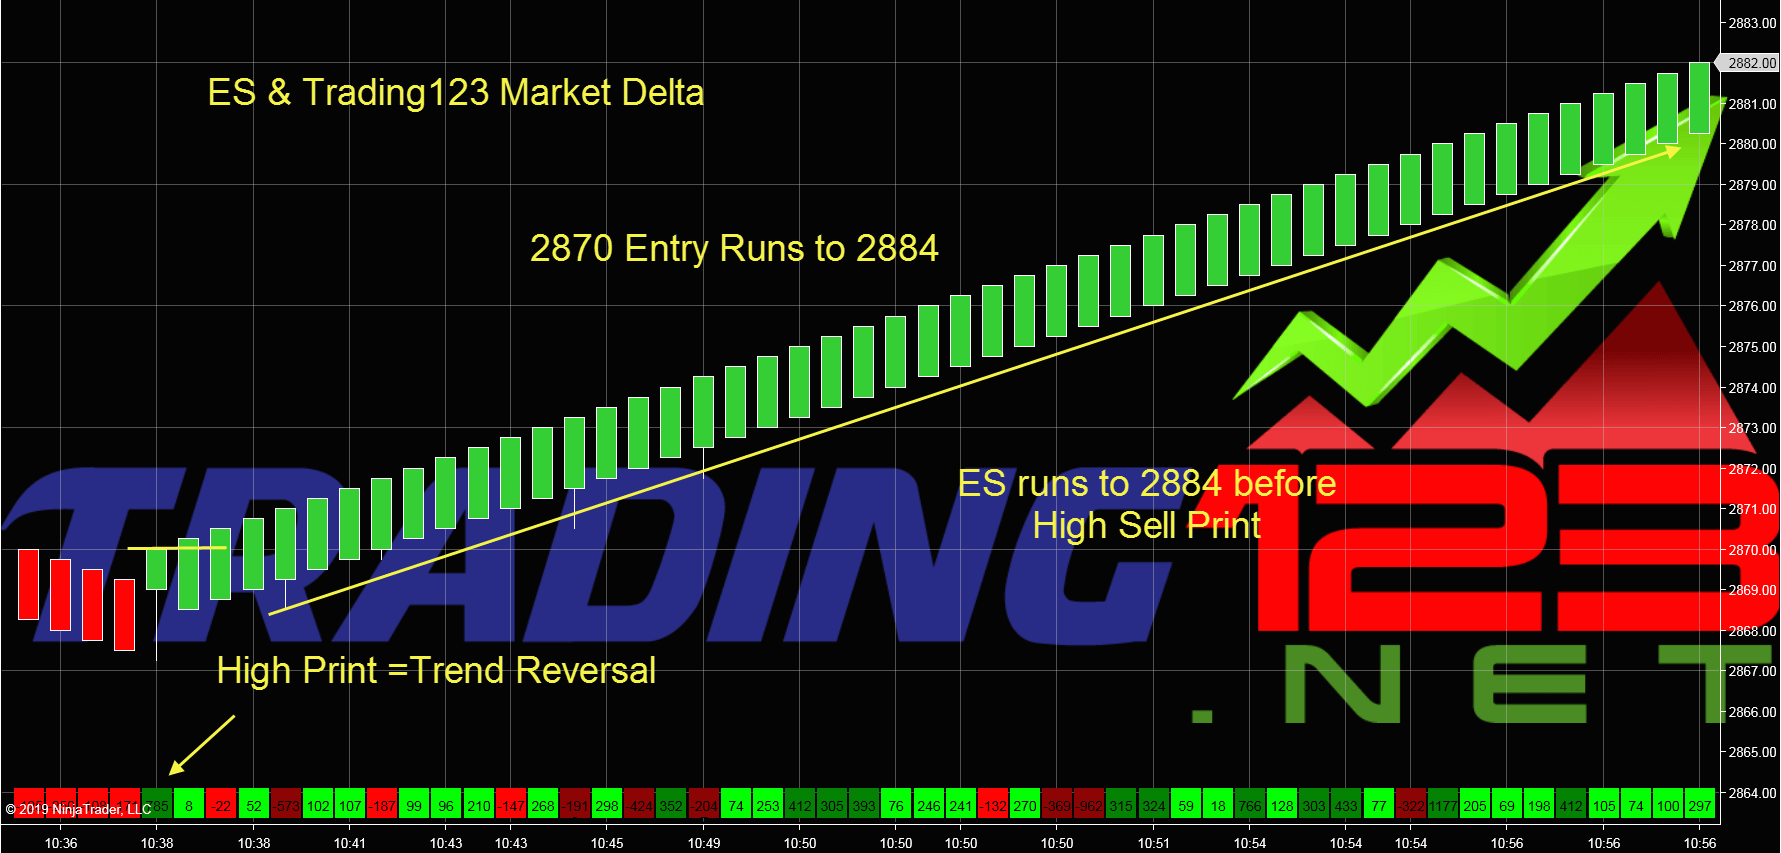 Market Delta Indicator | Follow the Institutional Order Flow | Trading123